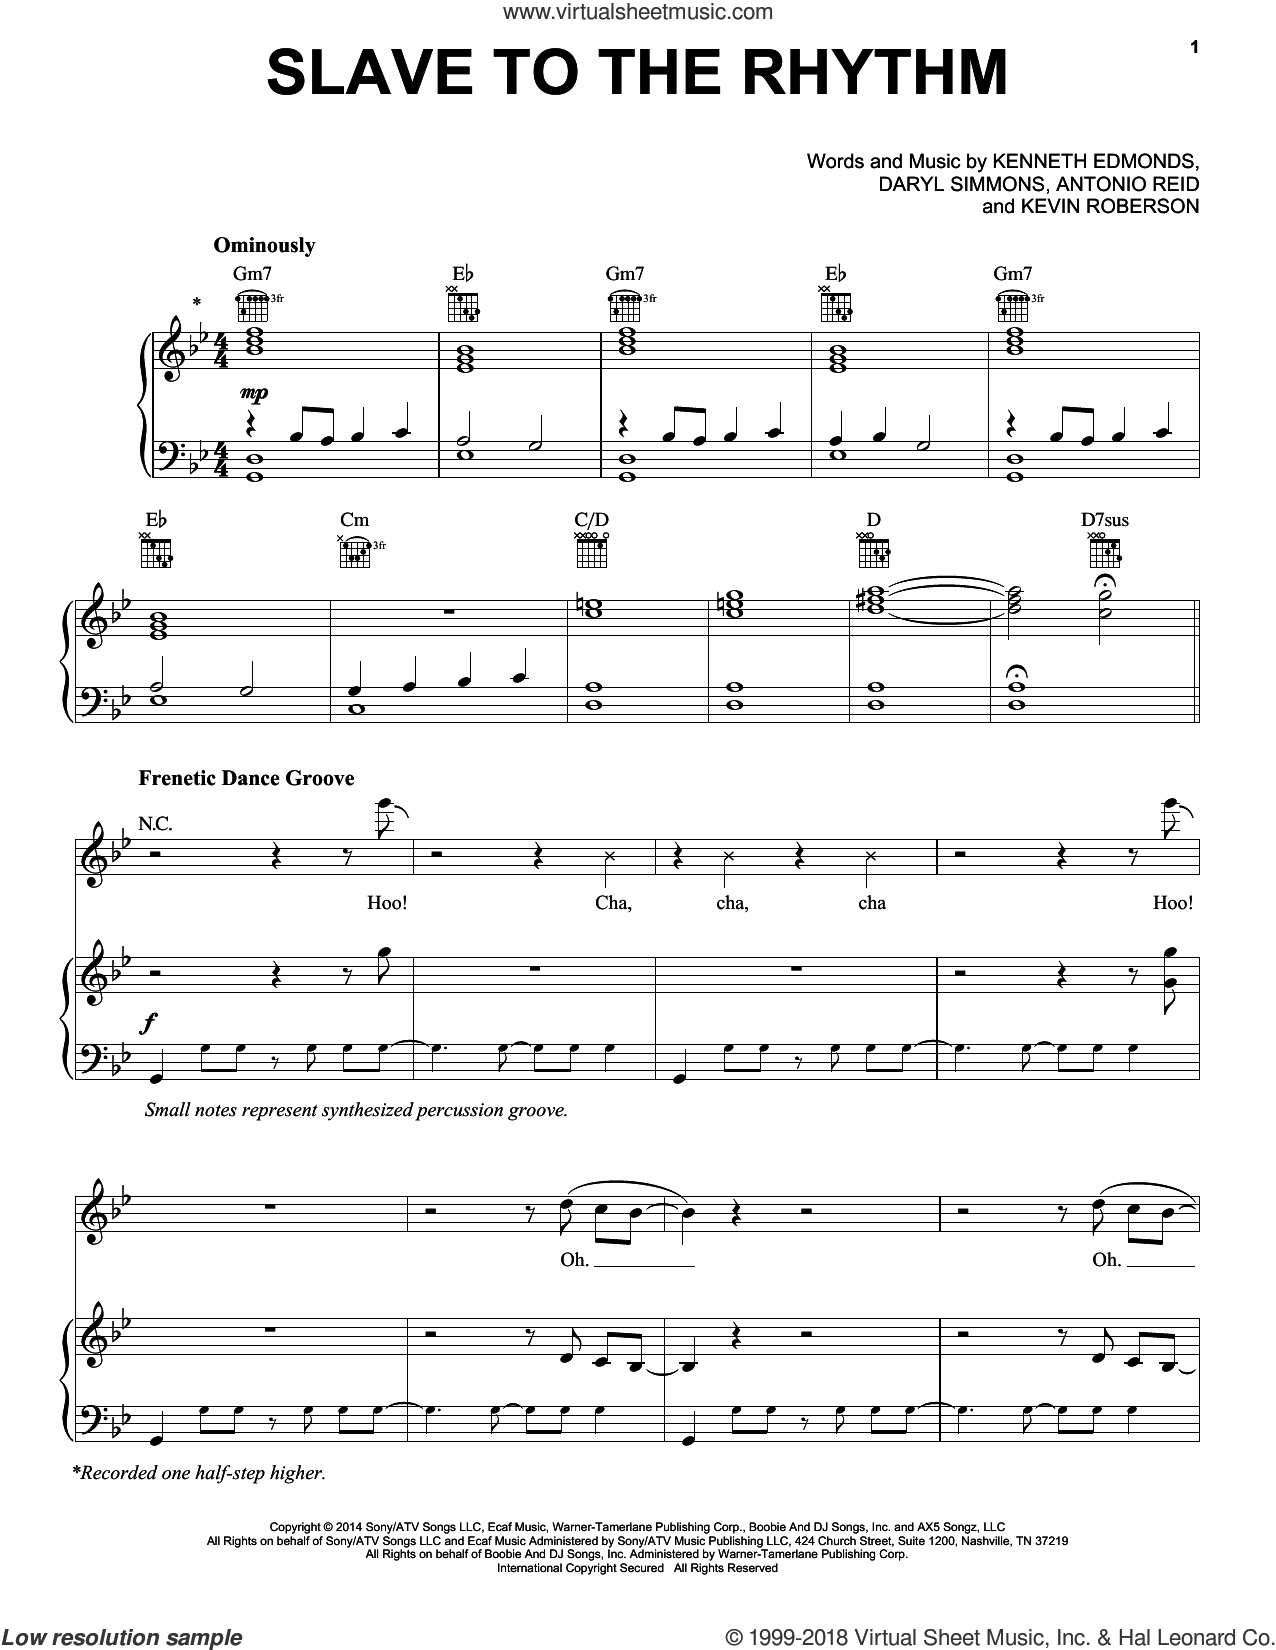 Slave To The Rhythm sheet music for voice, piano or guitar by Michael Jackson, Antonio Reid, Daryl Simmons, Kenneth Edmonds and Kevin Roberson, intermediate